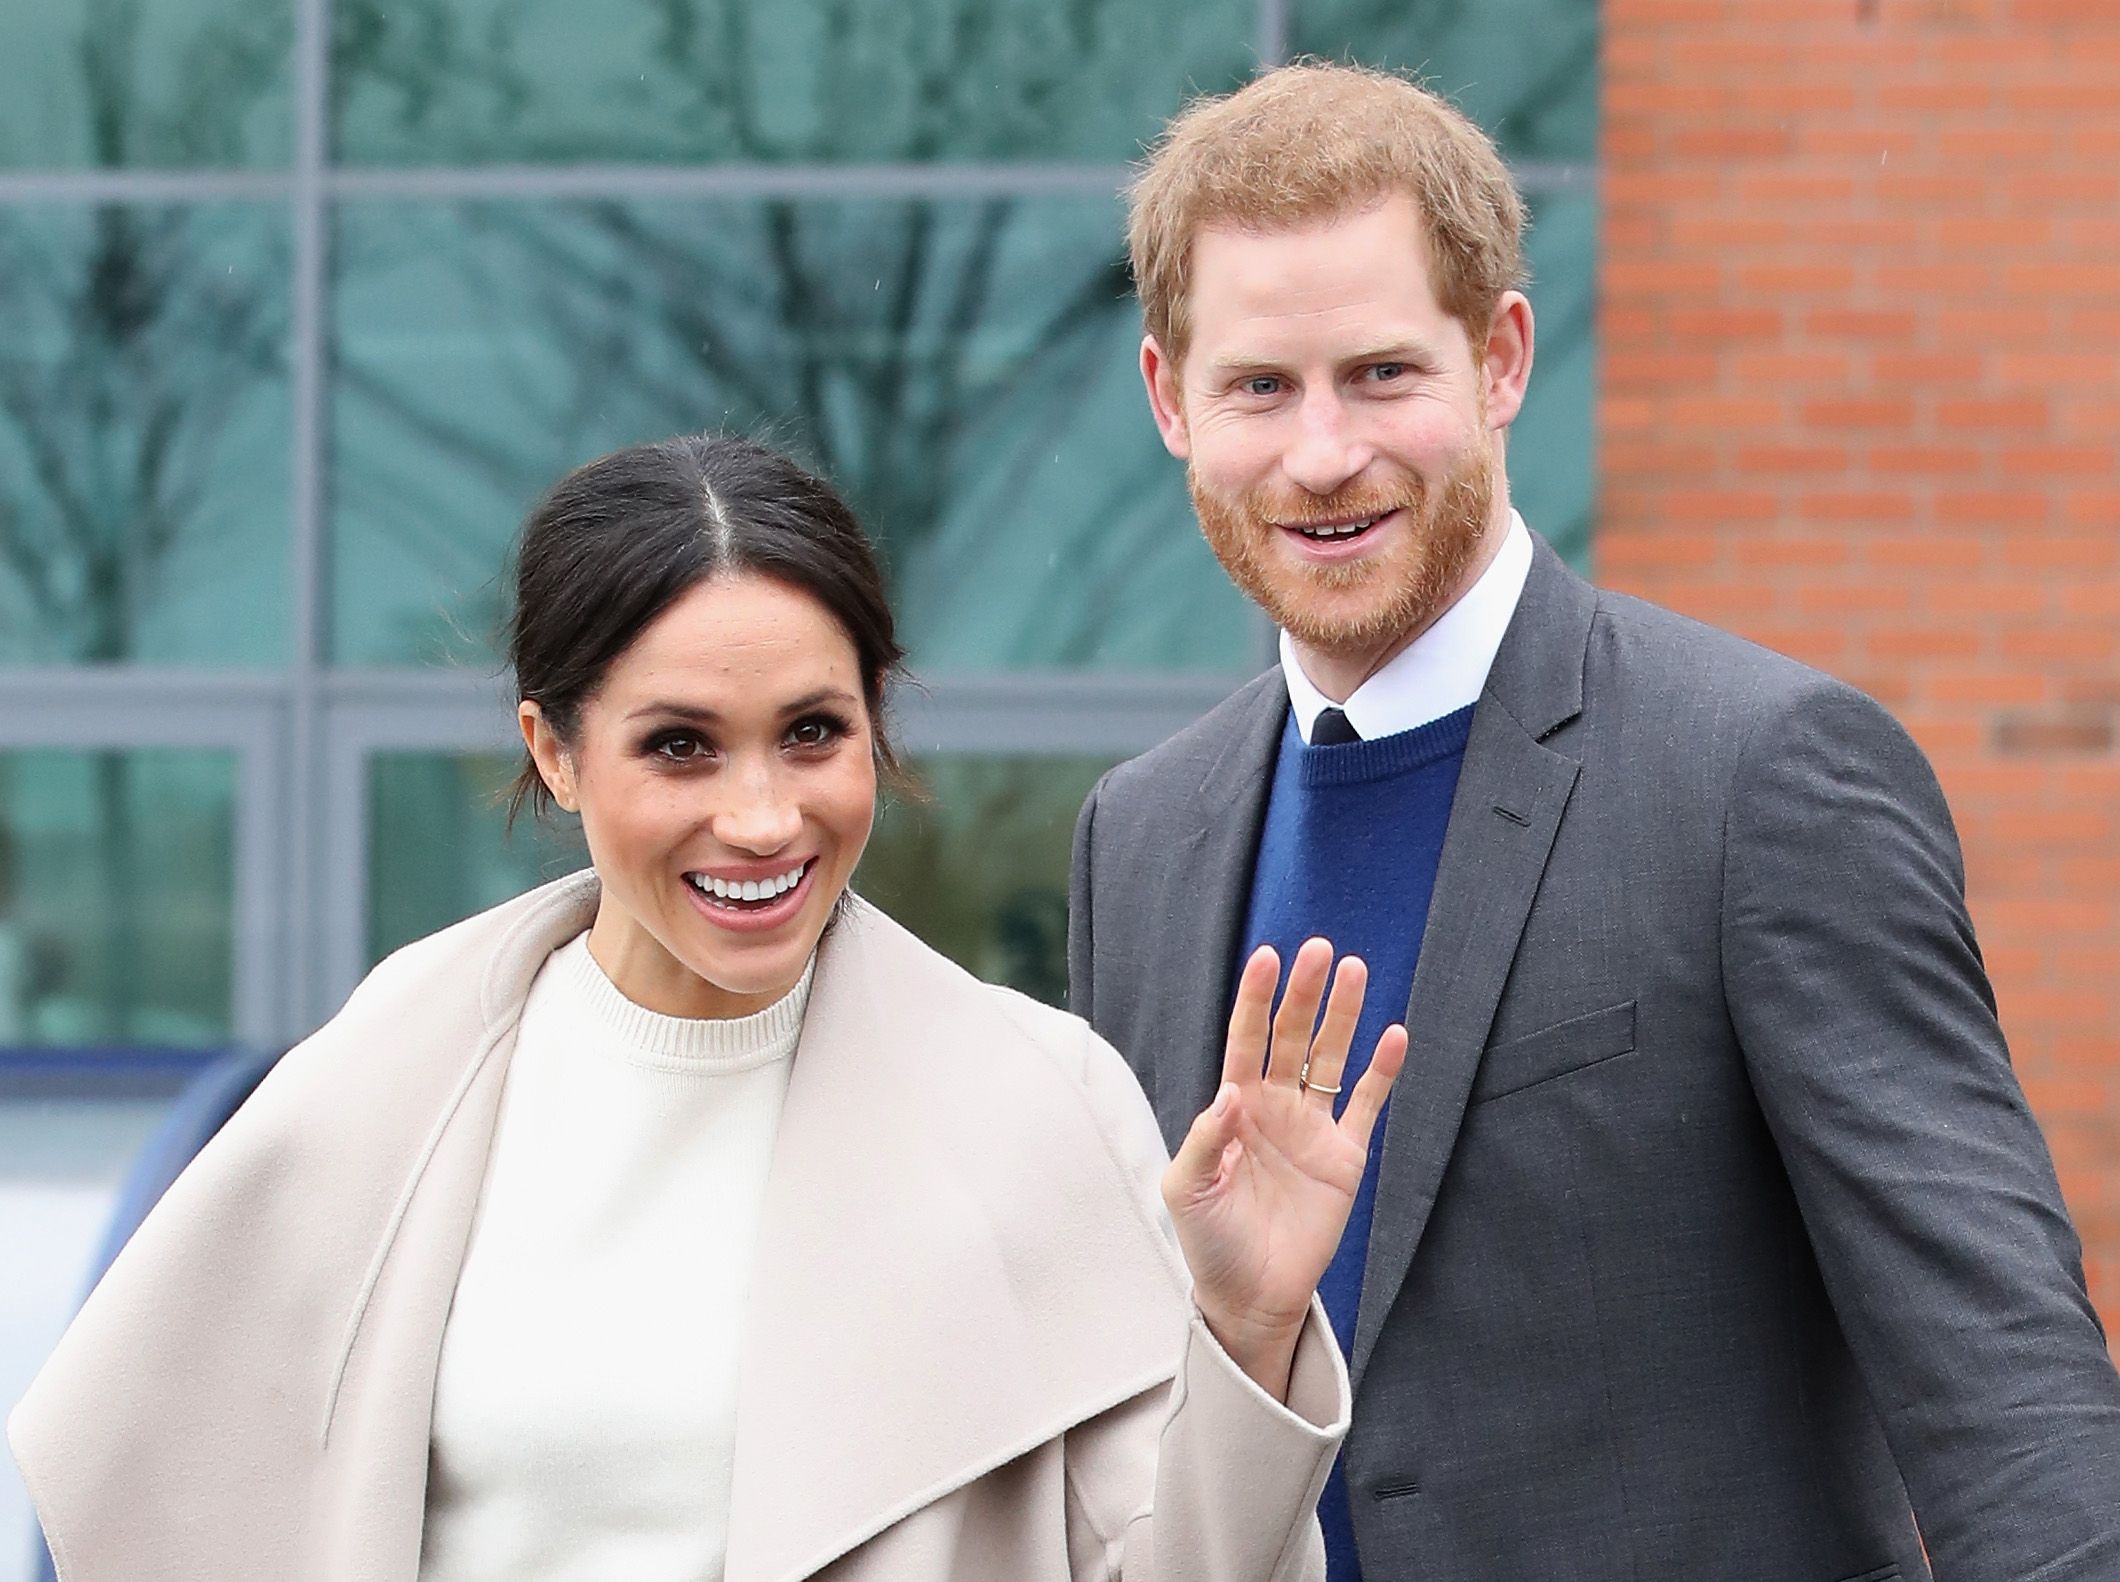 Prince Harry and Meghan Markle depart from Catalyst Inc, Northern Ireland's next generation science park on March 23, 2018 in Belfast, Nothern Ireland | Photo: Getty Images